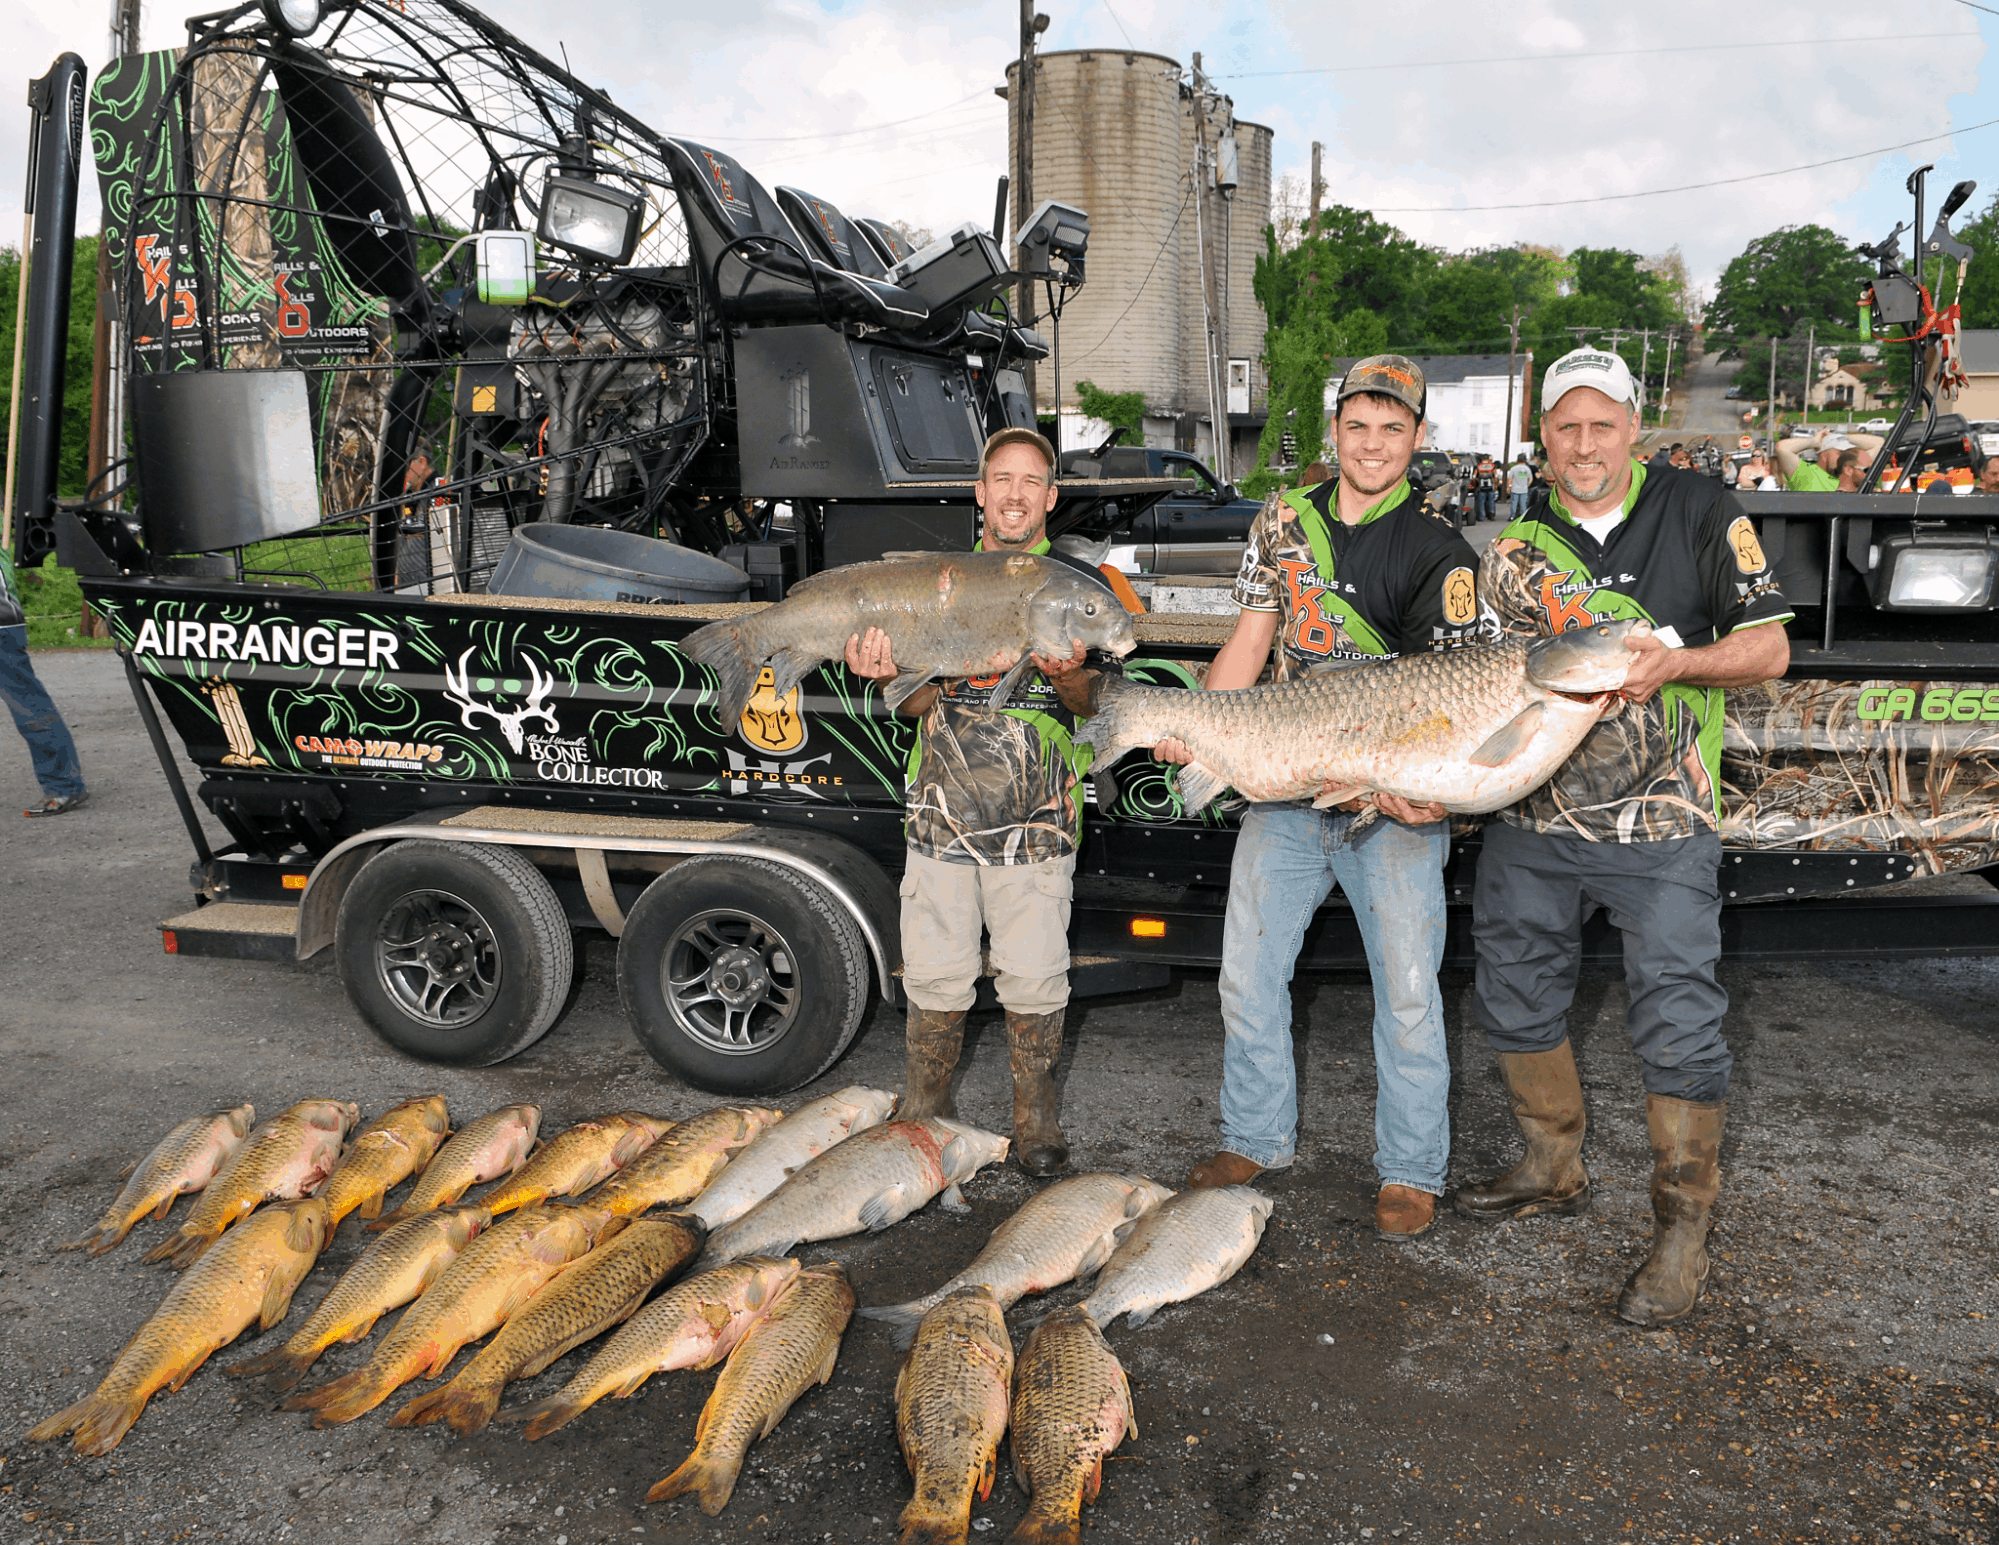 reducing draw weight on bowfishing bow